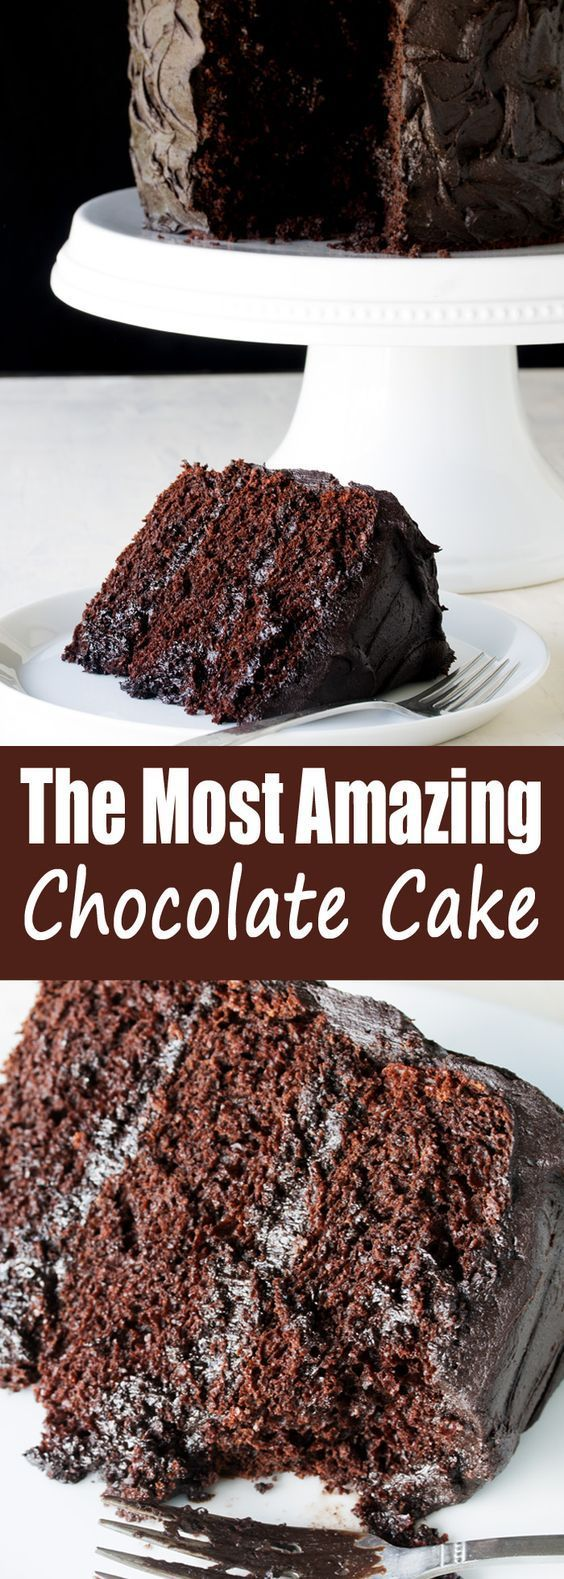 The Most Amazing Chocolate Cake is here. I call this my Matilda Cake because I swear it's just as good as the cake that Bruce Bogtrotter ate in Matilda. Moist, chocolatey perfection. This is the chocolate cake you've been dreaming of.